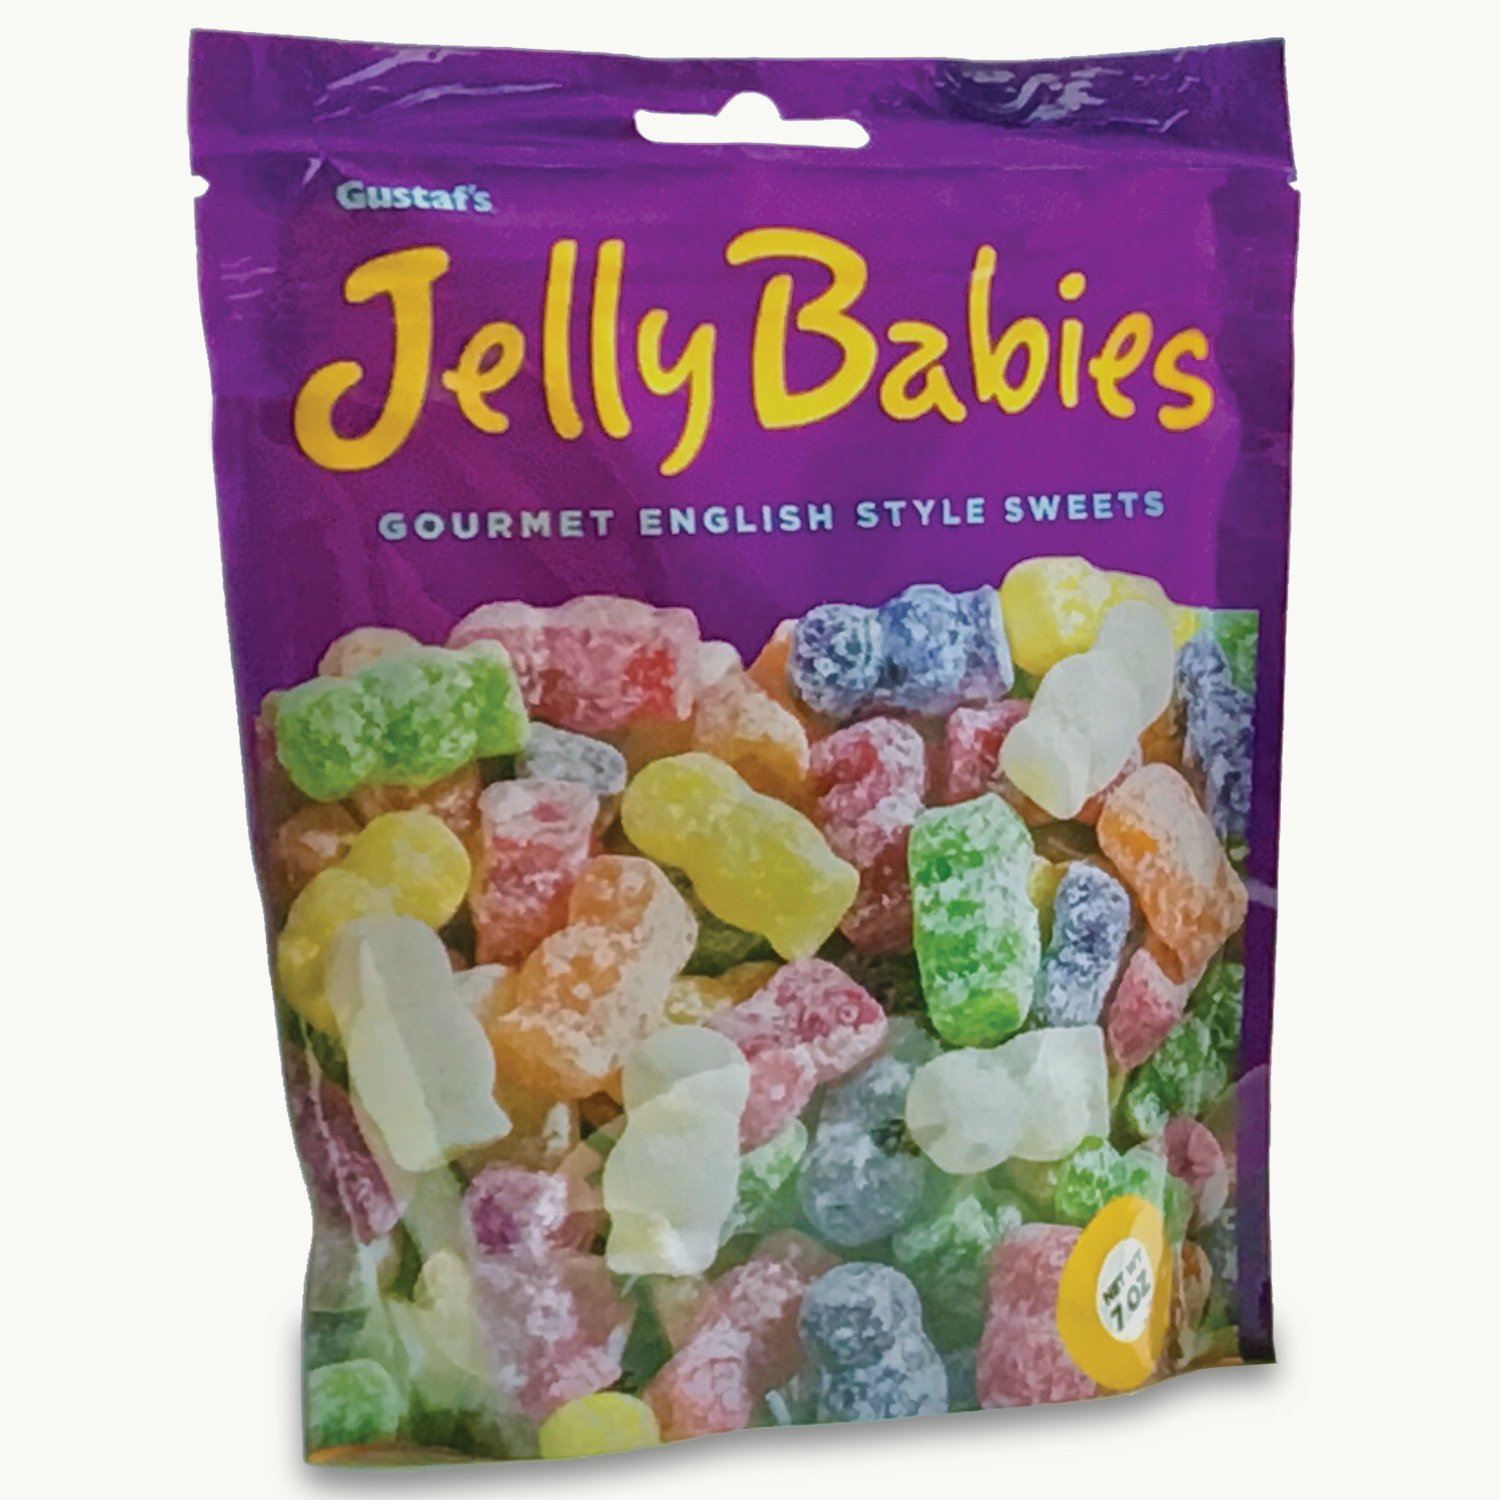 Gustaf's Jelly Babies, 2.2-Pound Bags (Pack of 3) by Gustaf's